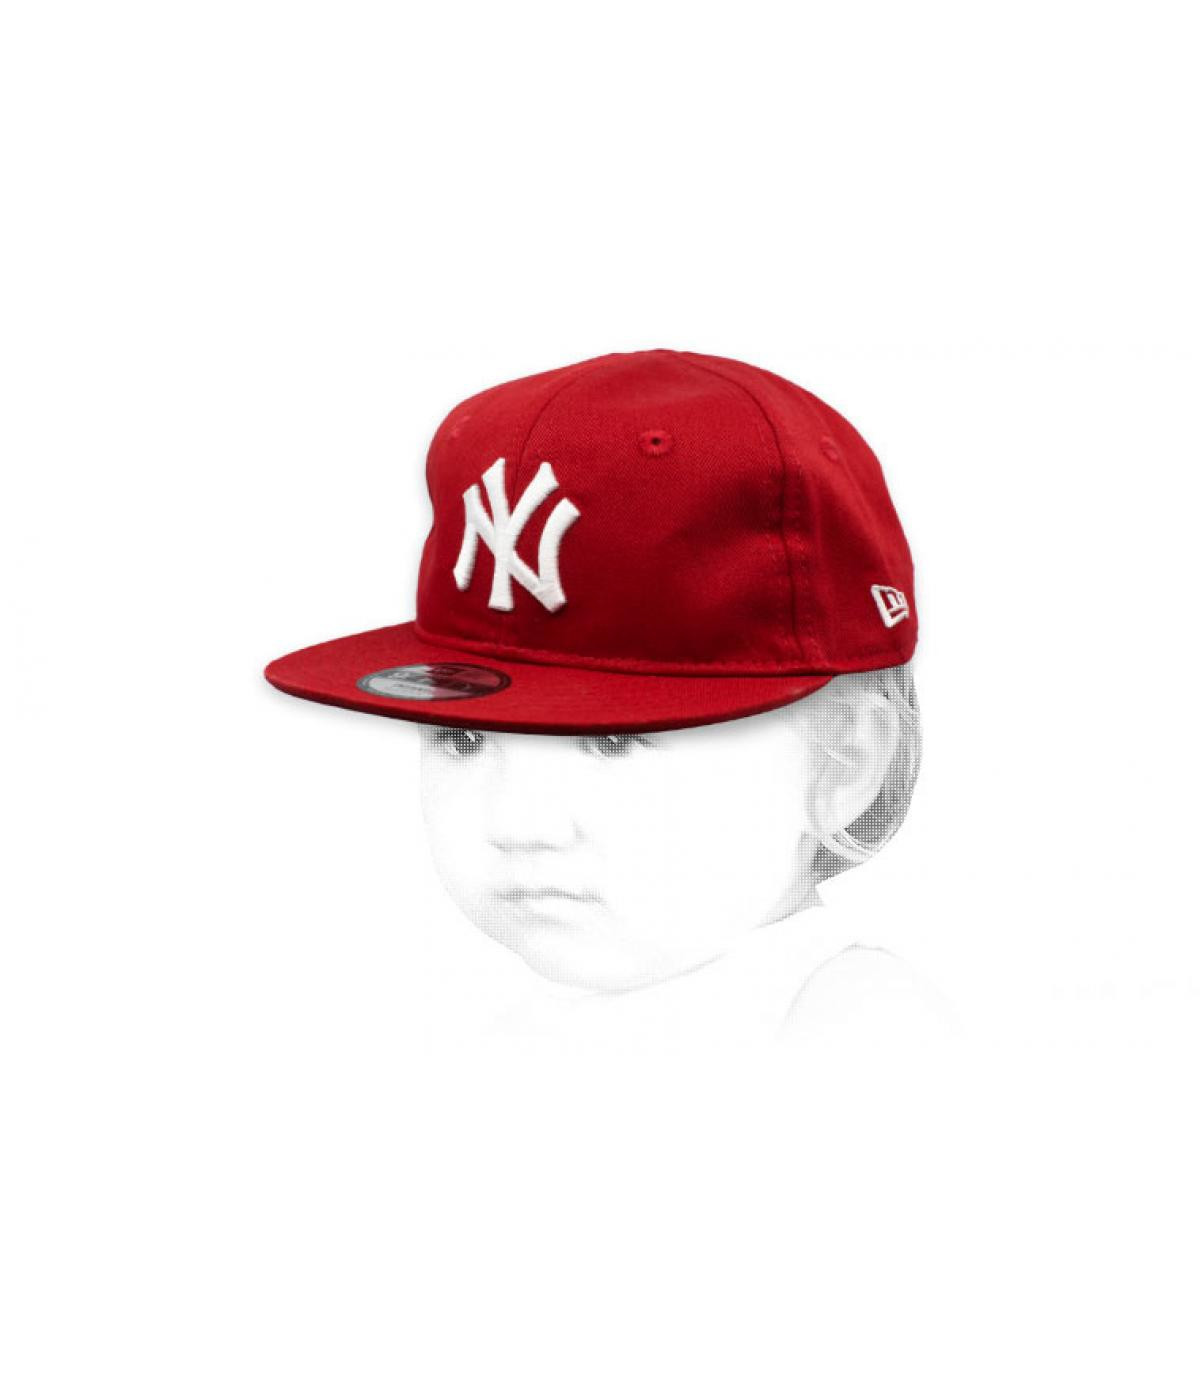 red and white NY baby cap